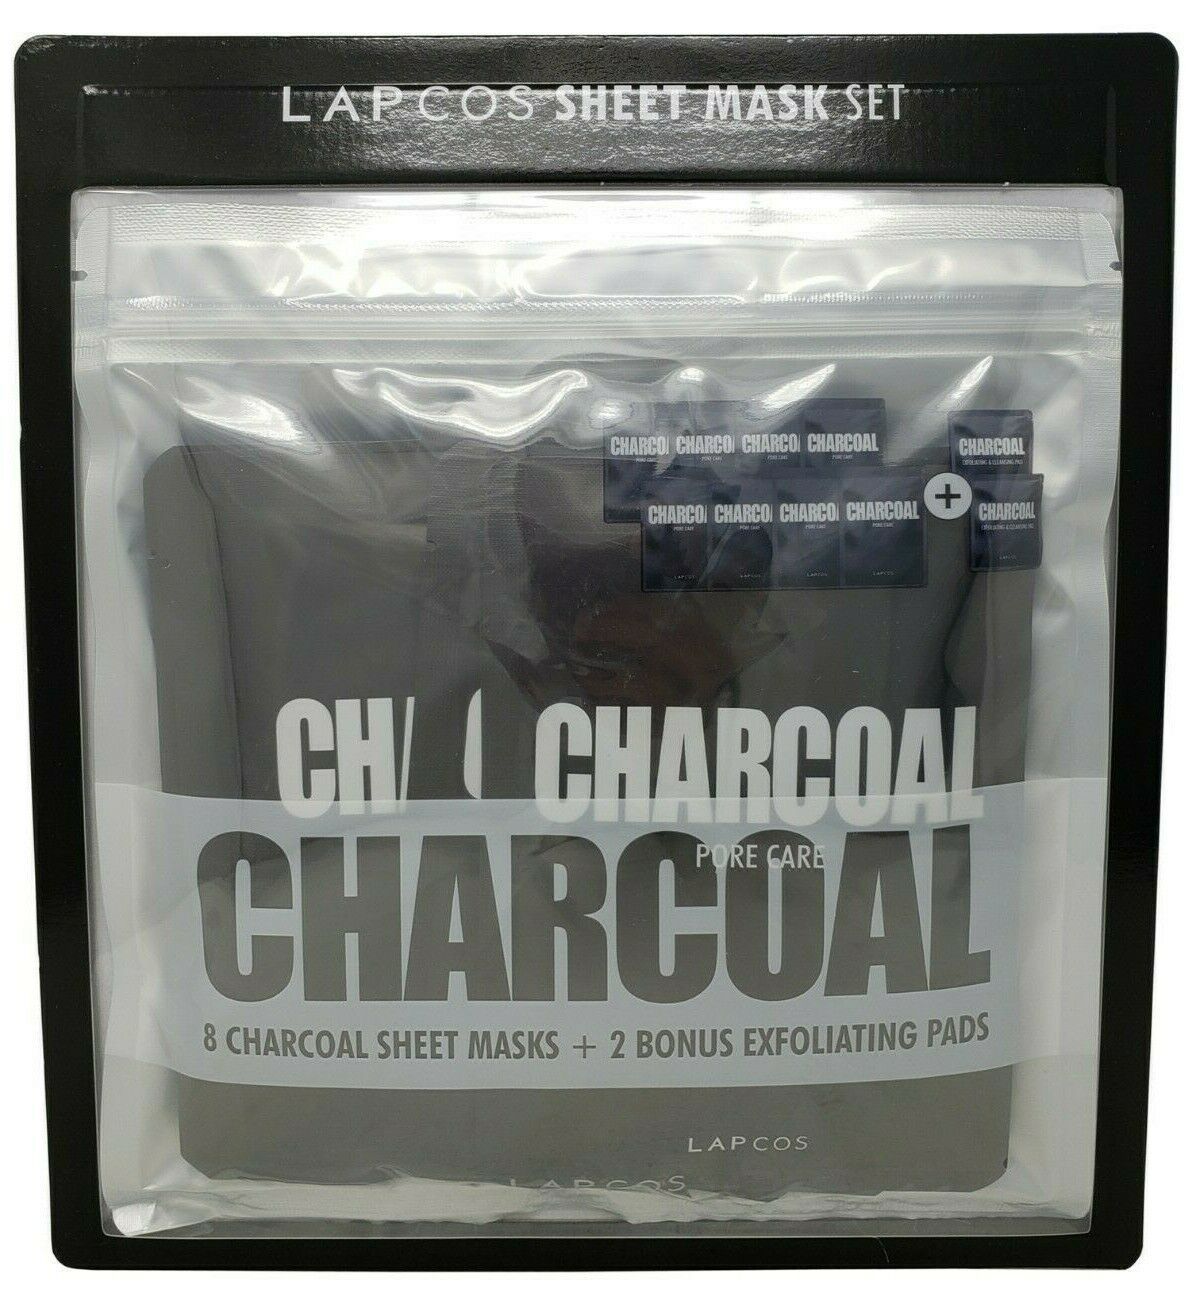 Lap Cos Charcoal Sheet Mask Set 8 Pack + 2 Exfoliating Pads